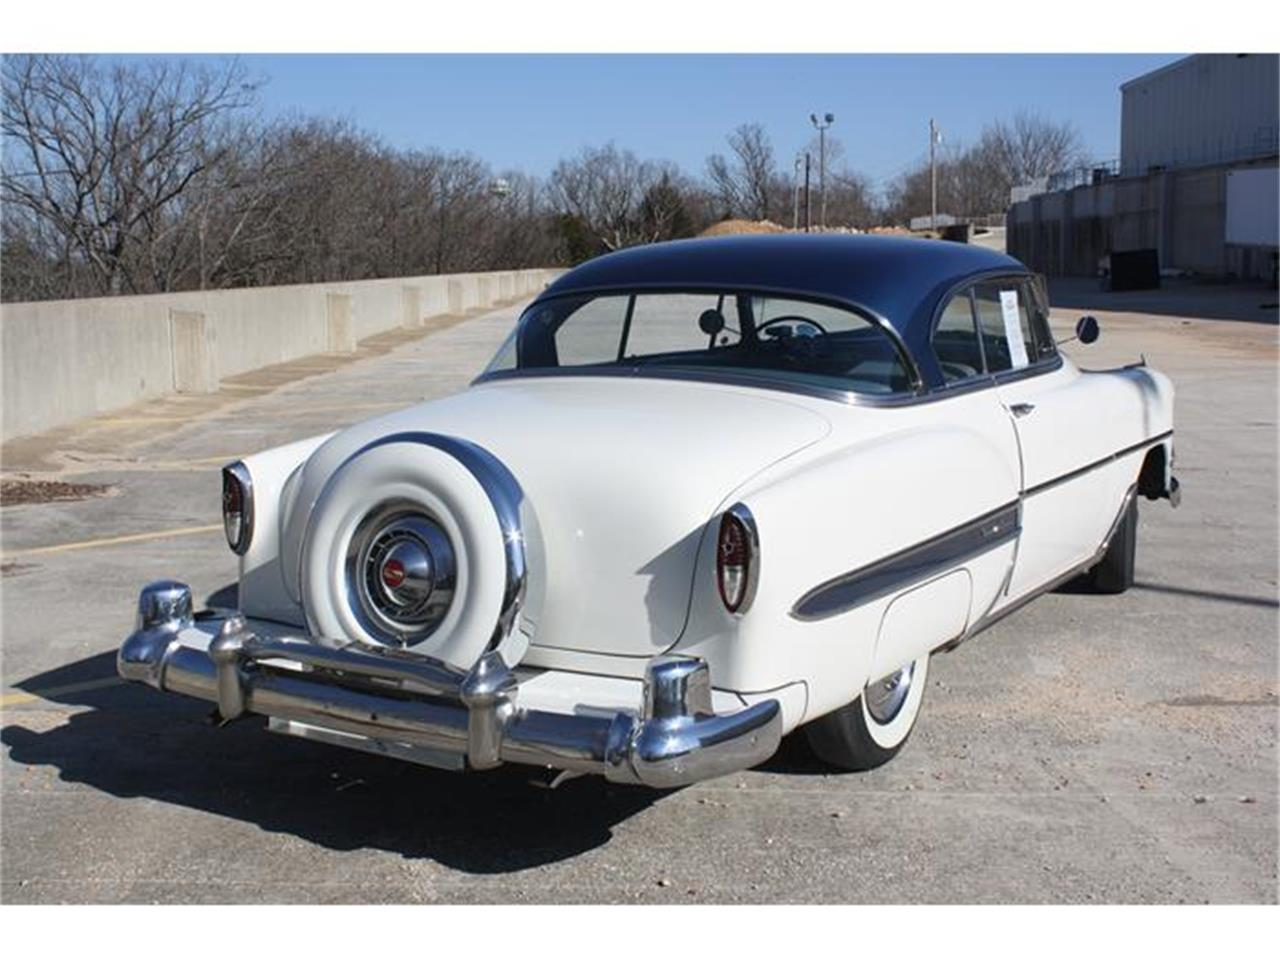 Cars For Sale Branson Mo